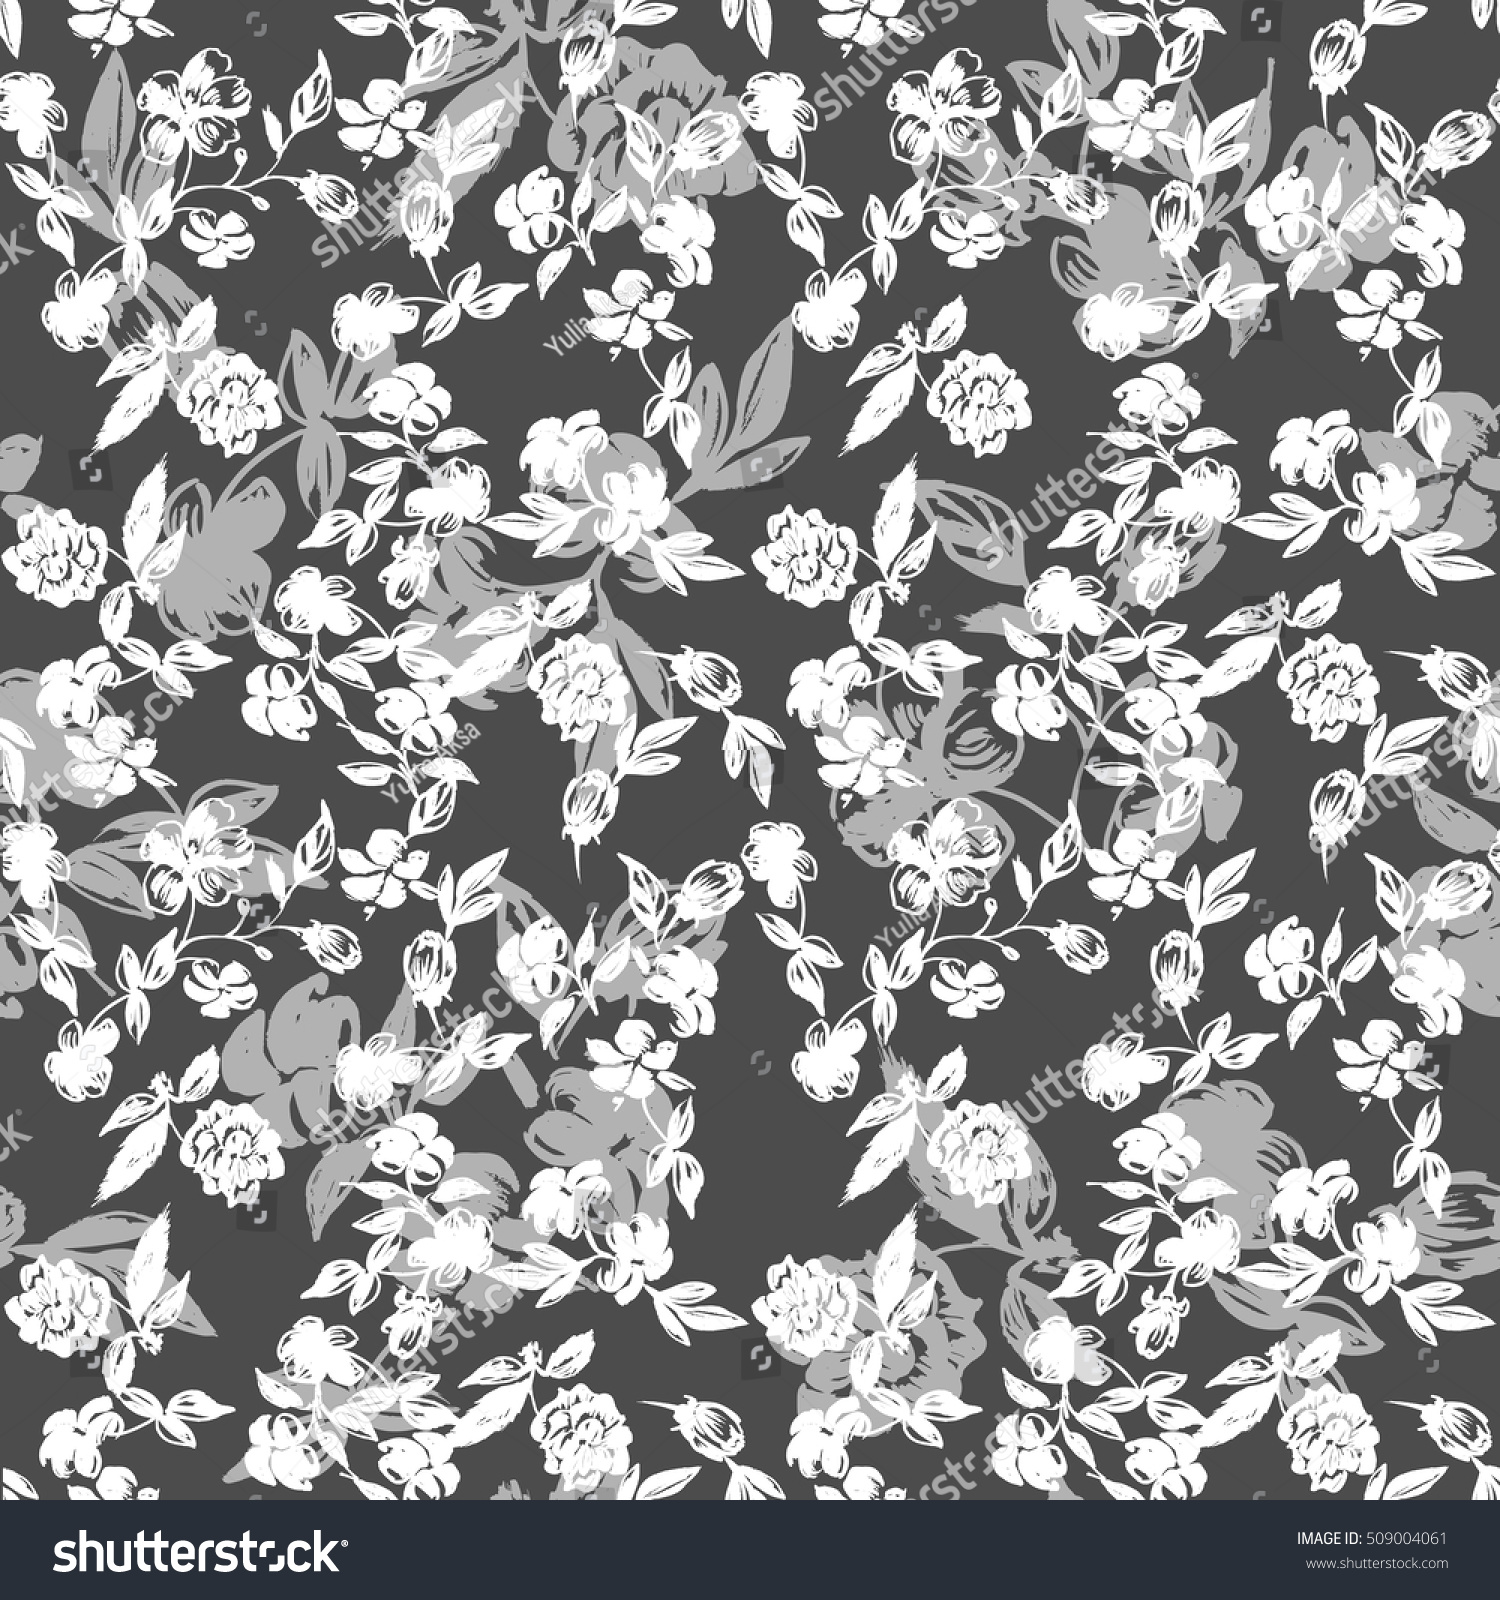 Small Floral Design Black White Ditsy Stock Photo Photo Vector